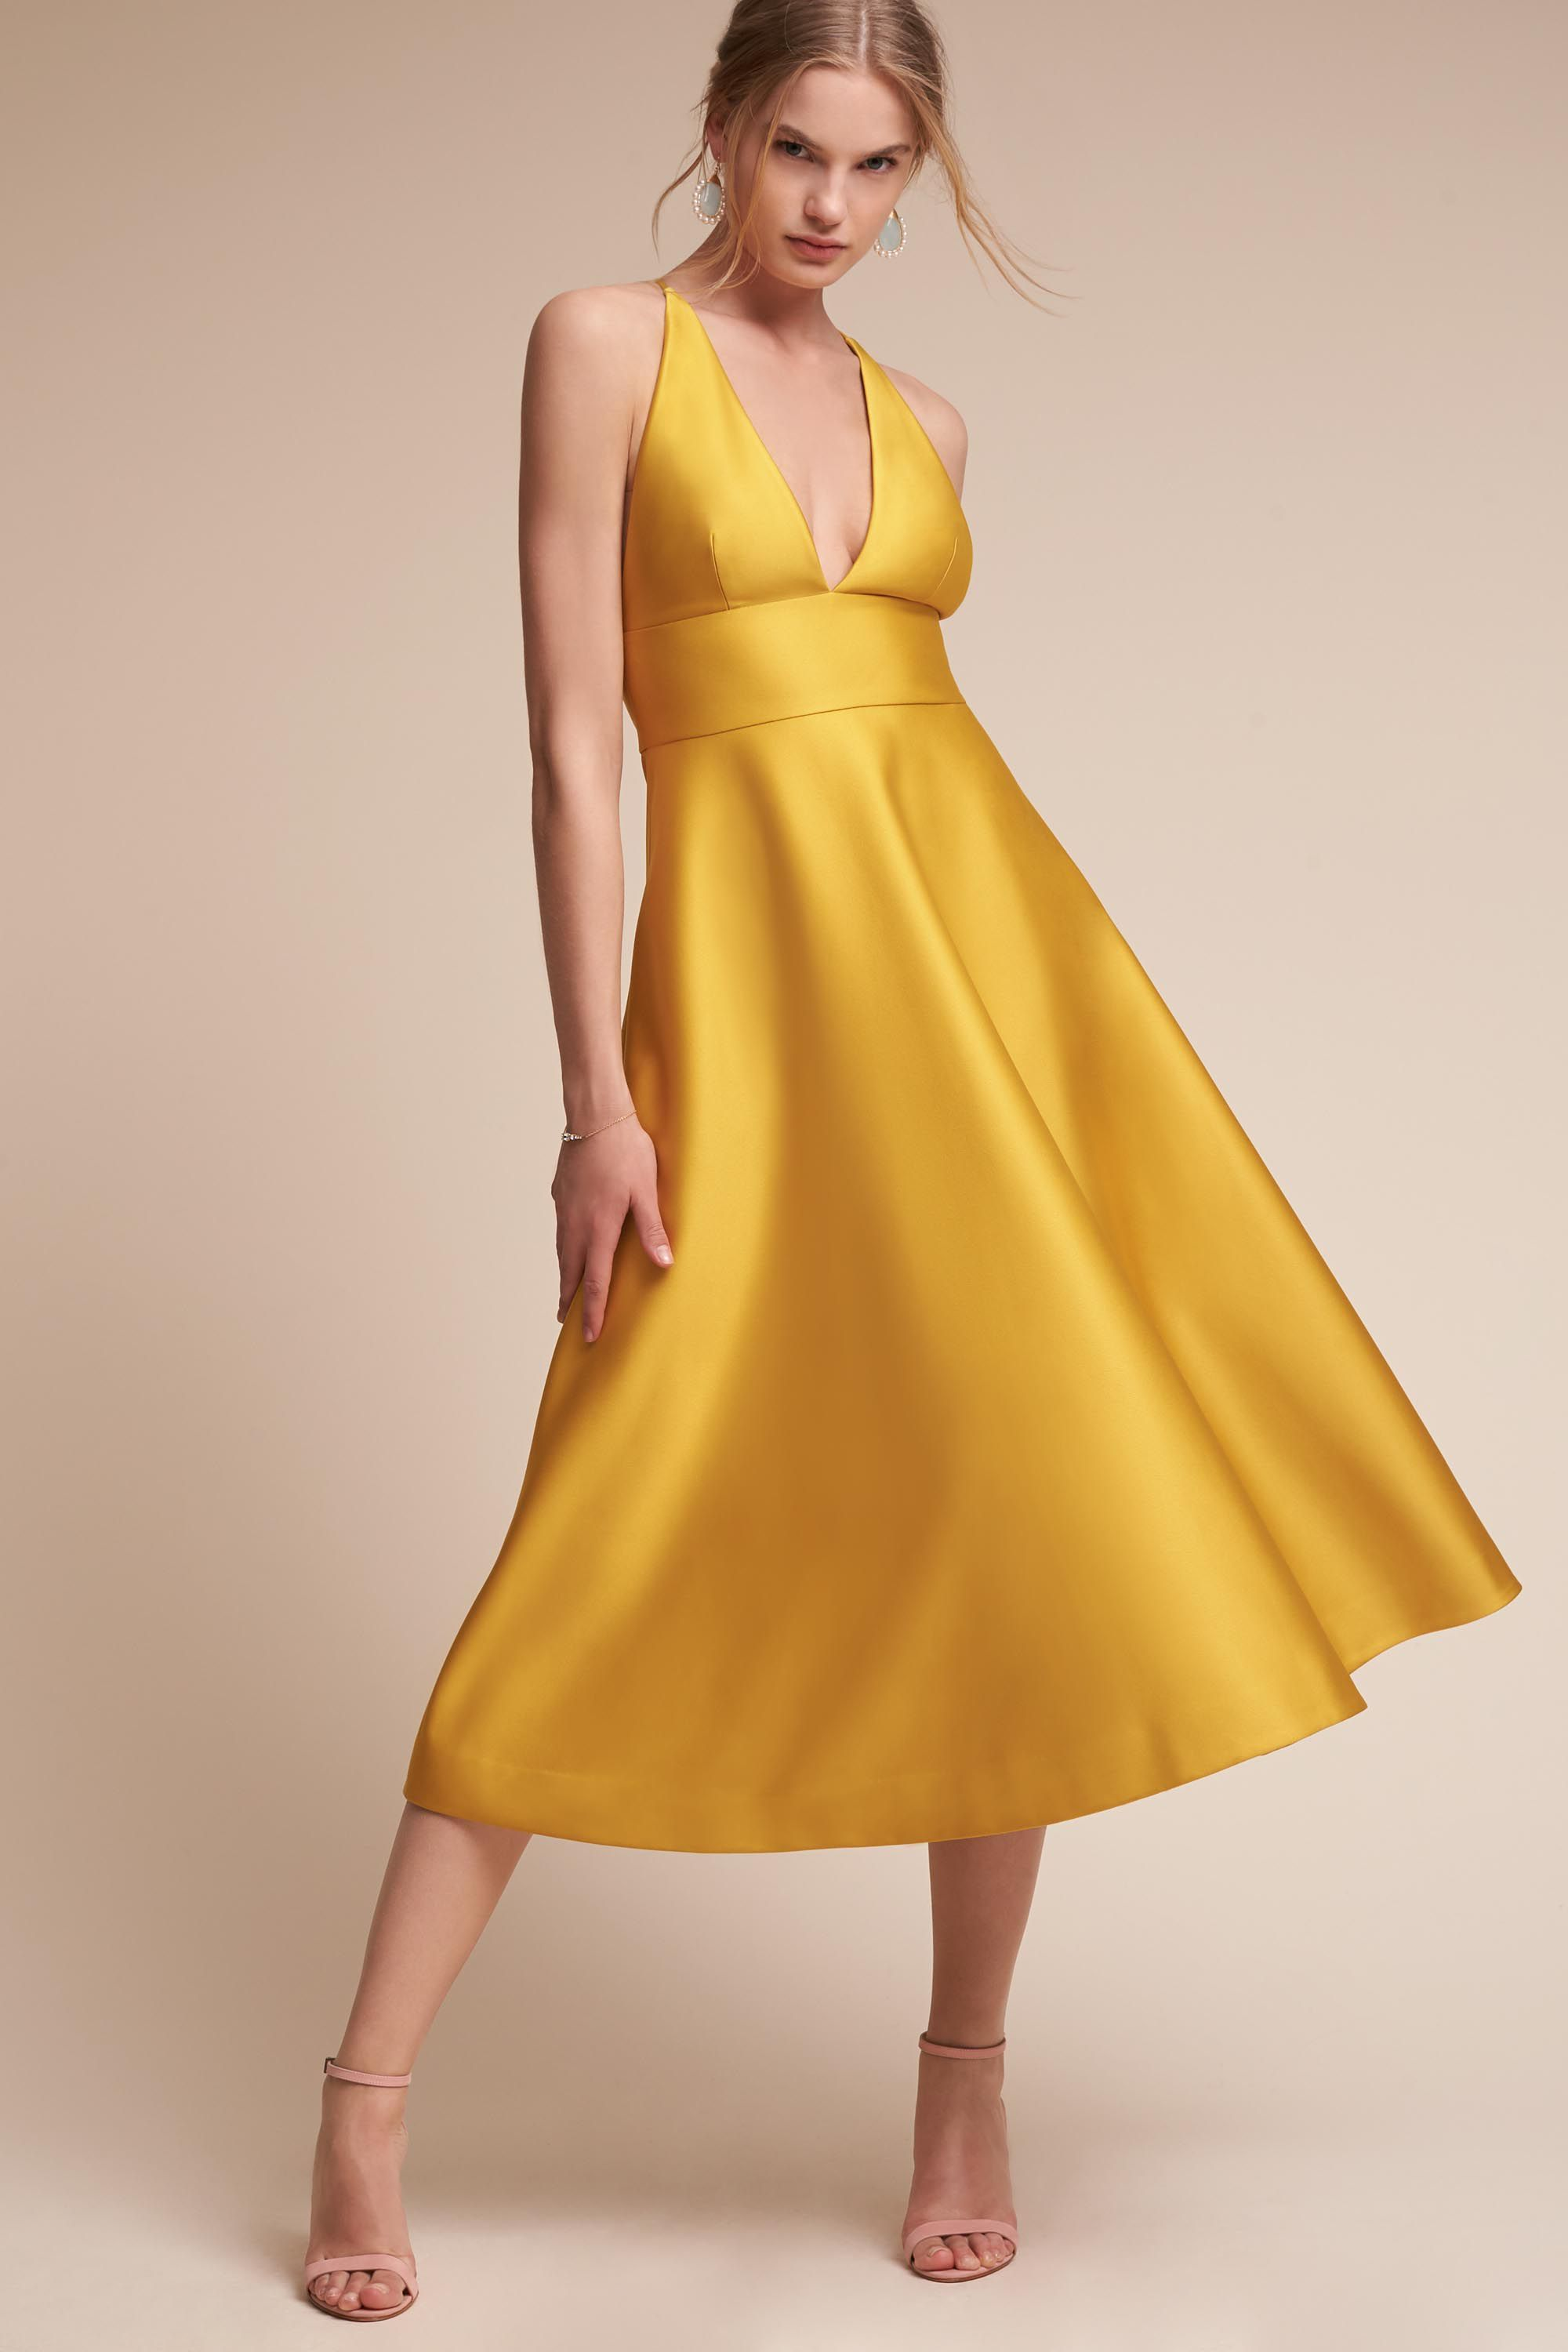 reputable site classic style price reduced Shelby Dress from @BHLDN | Dresses, Yellow satin dress ...